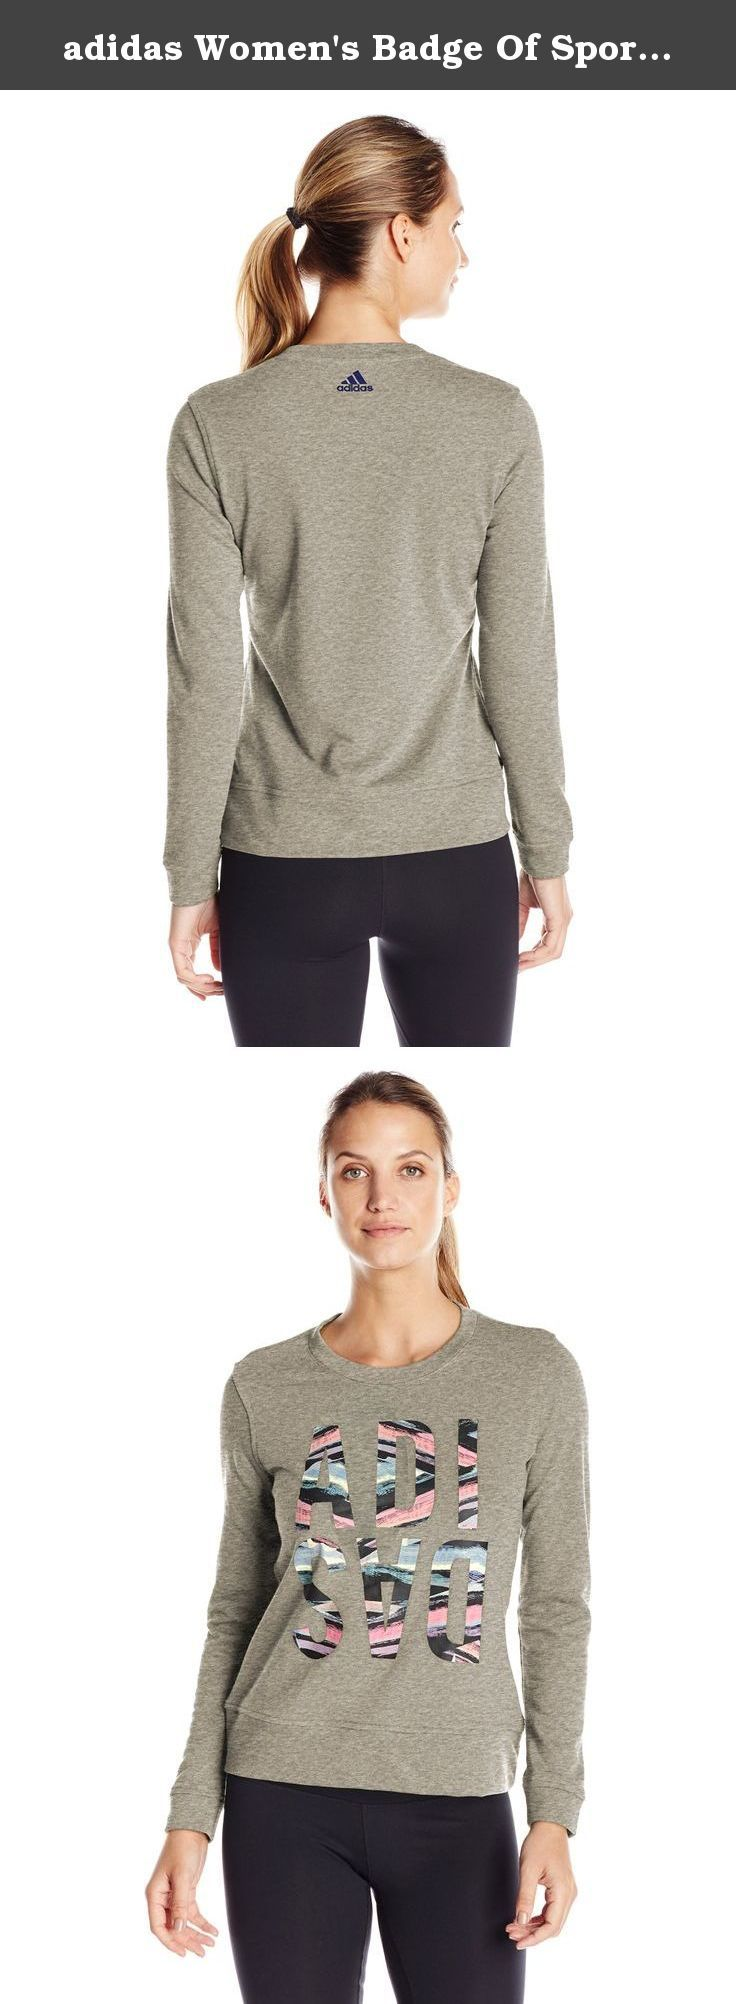 adidas Women's Badge Of Sport Graphic Long Sleeve Tee, X-Large, Medium Grey Heather/Dessert Print. This Women's sweatshirt is made of comfy French terry, with Cuffed sleeves and hem to keep the shirt in place when you move. adidas Letters filled in with a colorful print complete the athletic look.